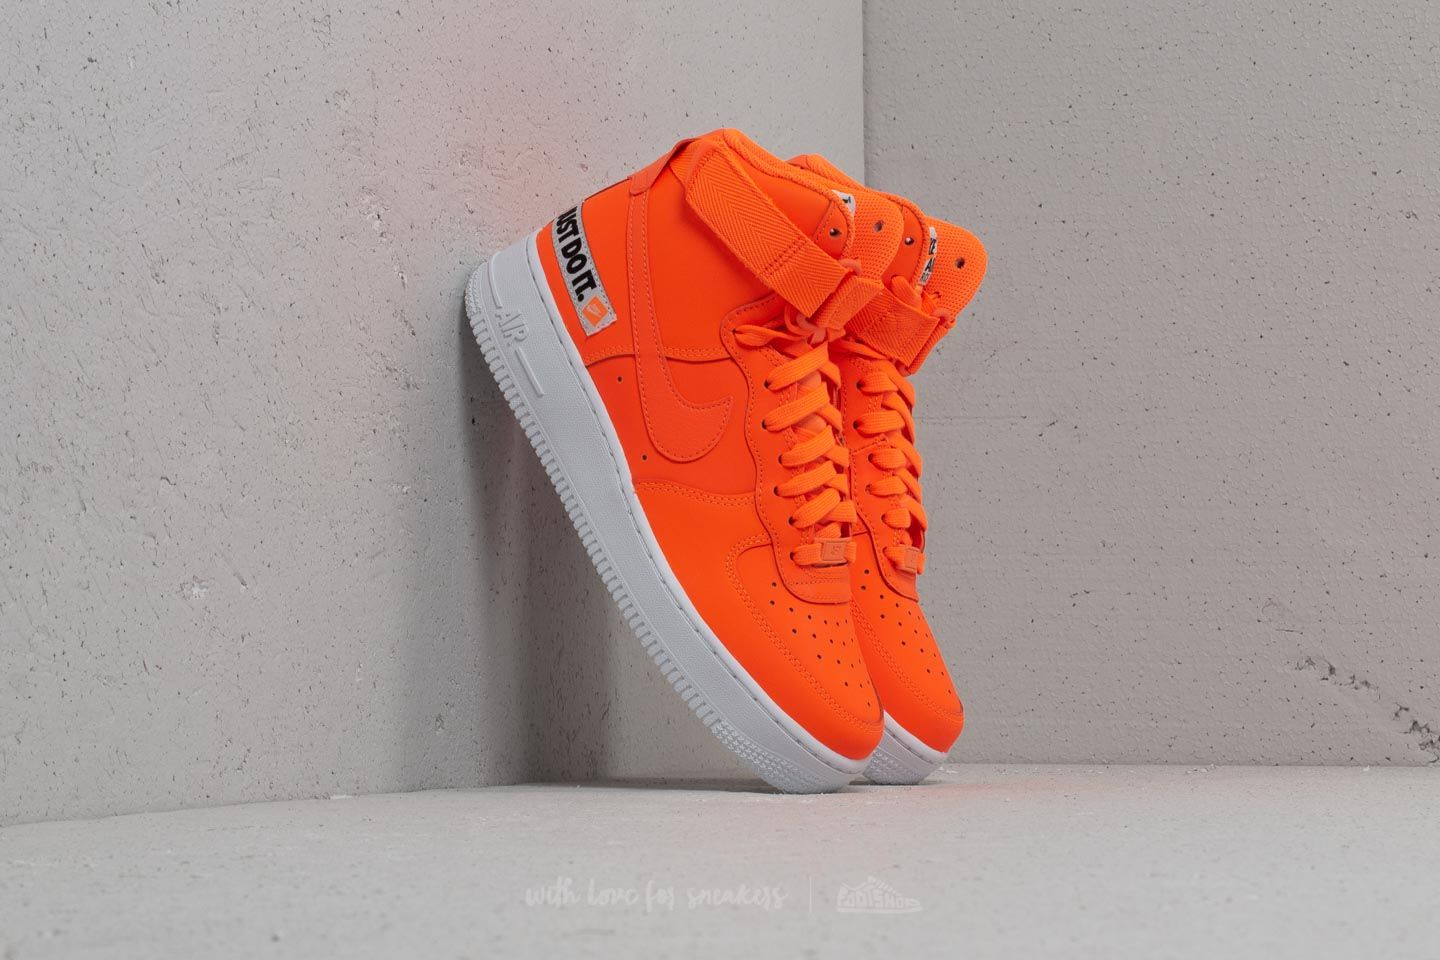 premium selection f25e4 79d04 Nike Wmns Air Force 1 Hi LX Leather